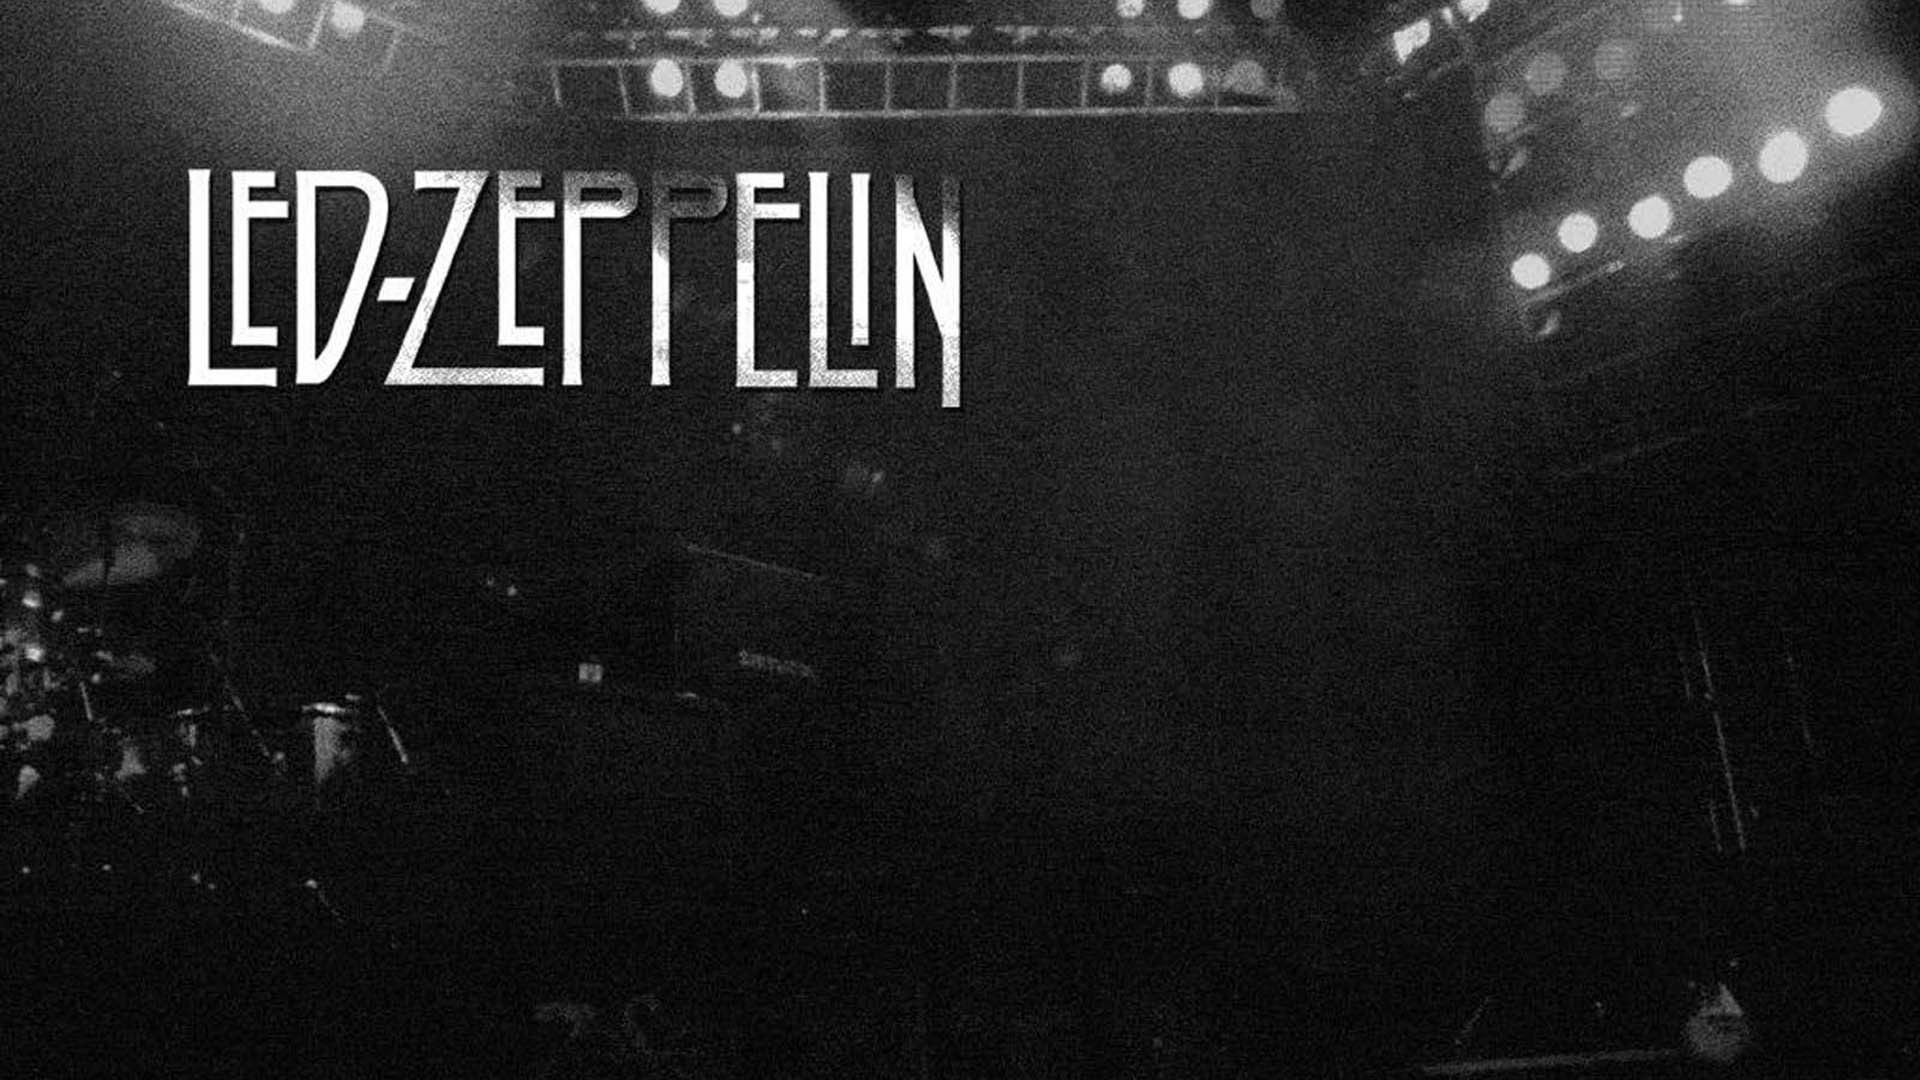 Led Zeppelin Backgrounds 69 Pictures